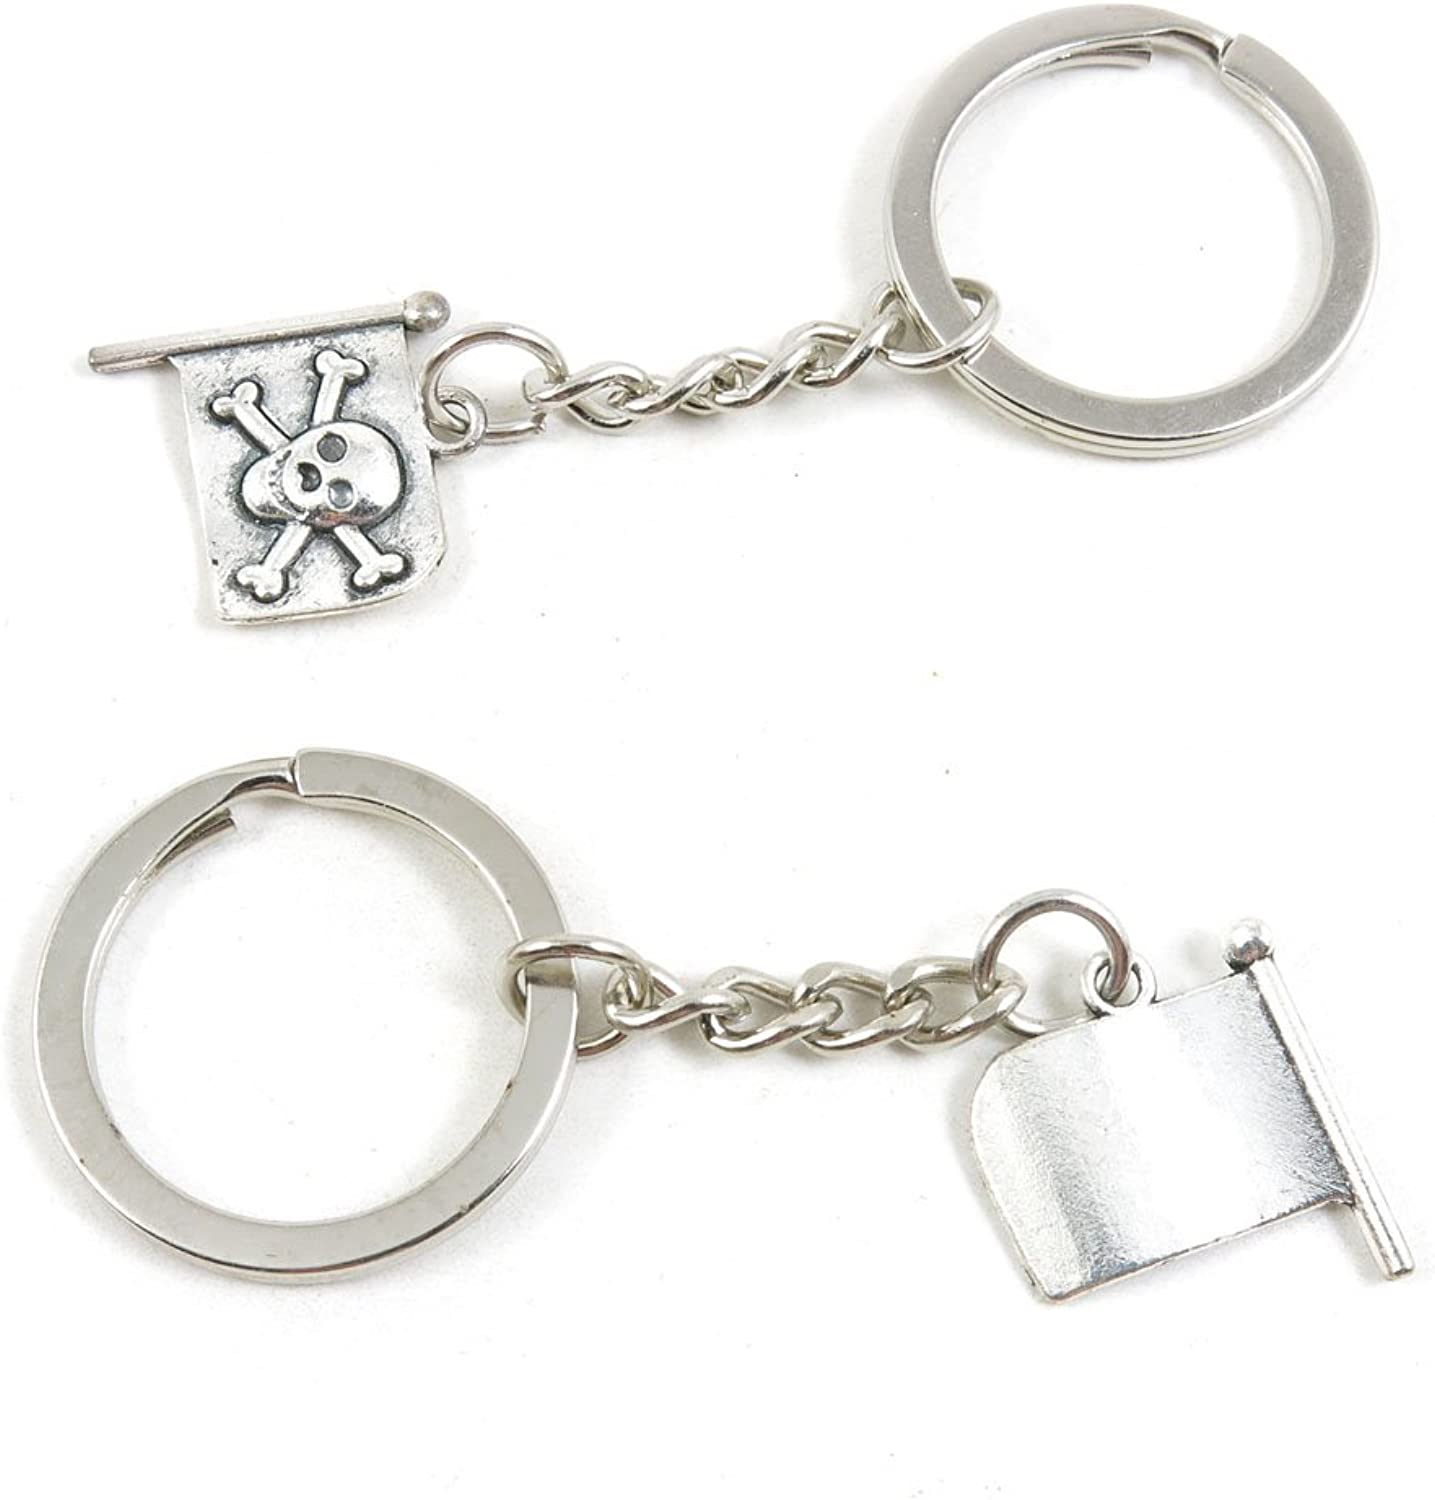 100 Pieces Keychain Keyring Door Car Key Chain Ring Tag Charms Bulk Supply Jewelry Making Clasp Findings G4VZ5Q Pirate Skull Flag